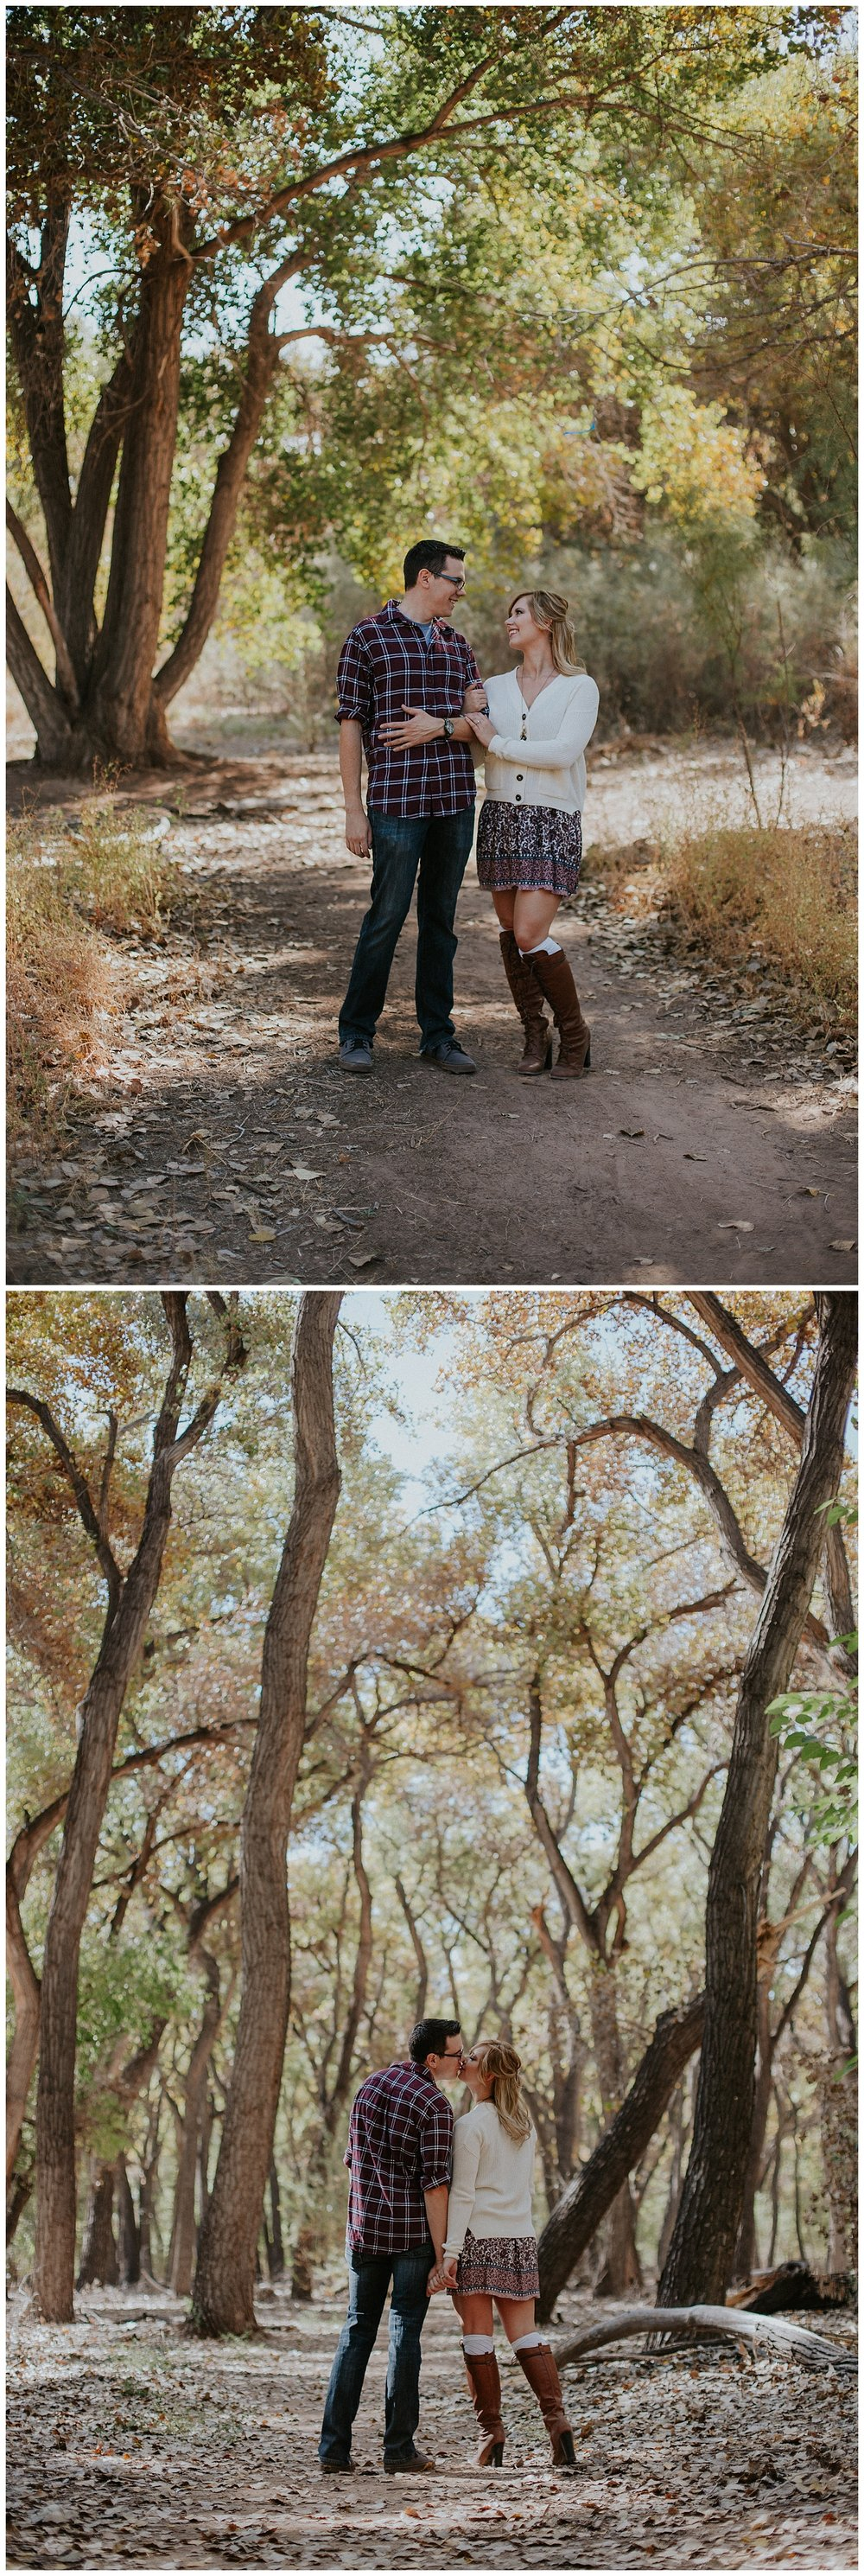 amanda-and-justin_downtown-albuquerque-engagement-photos_montano-open-space-albuquerque_albuquerque-engagement-photographer_0011.jpg